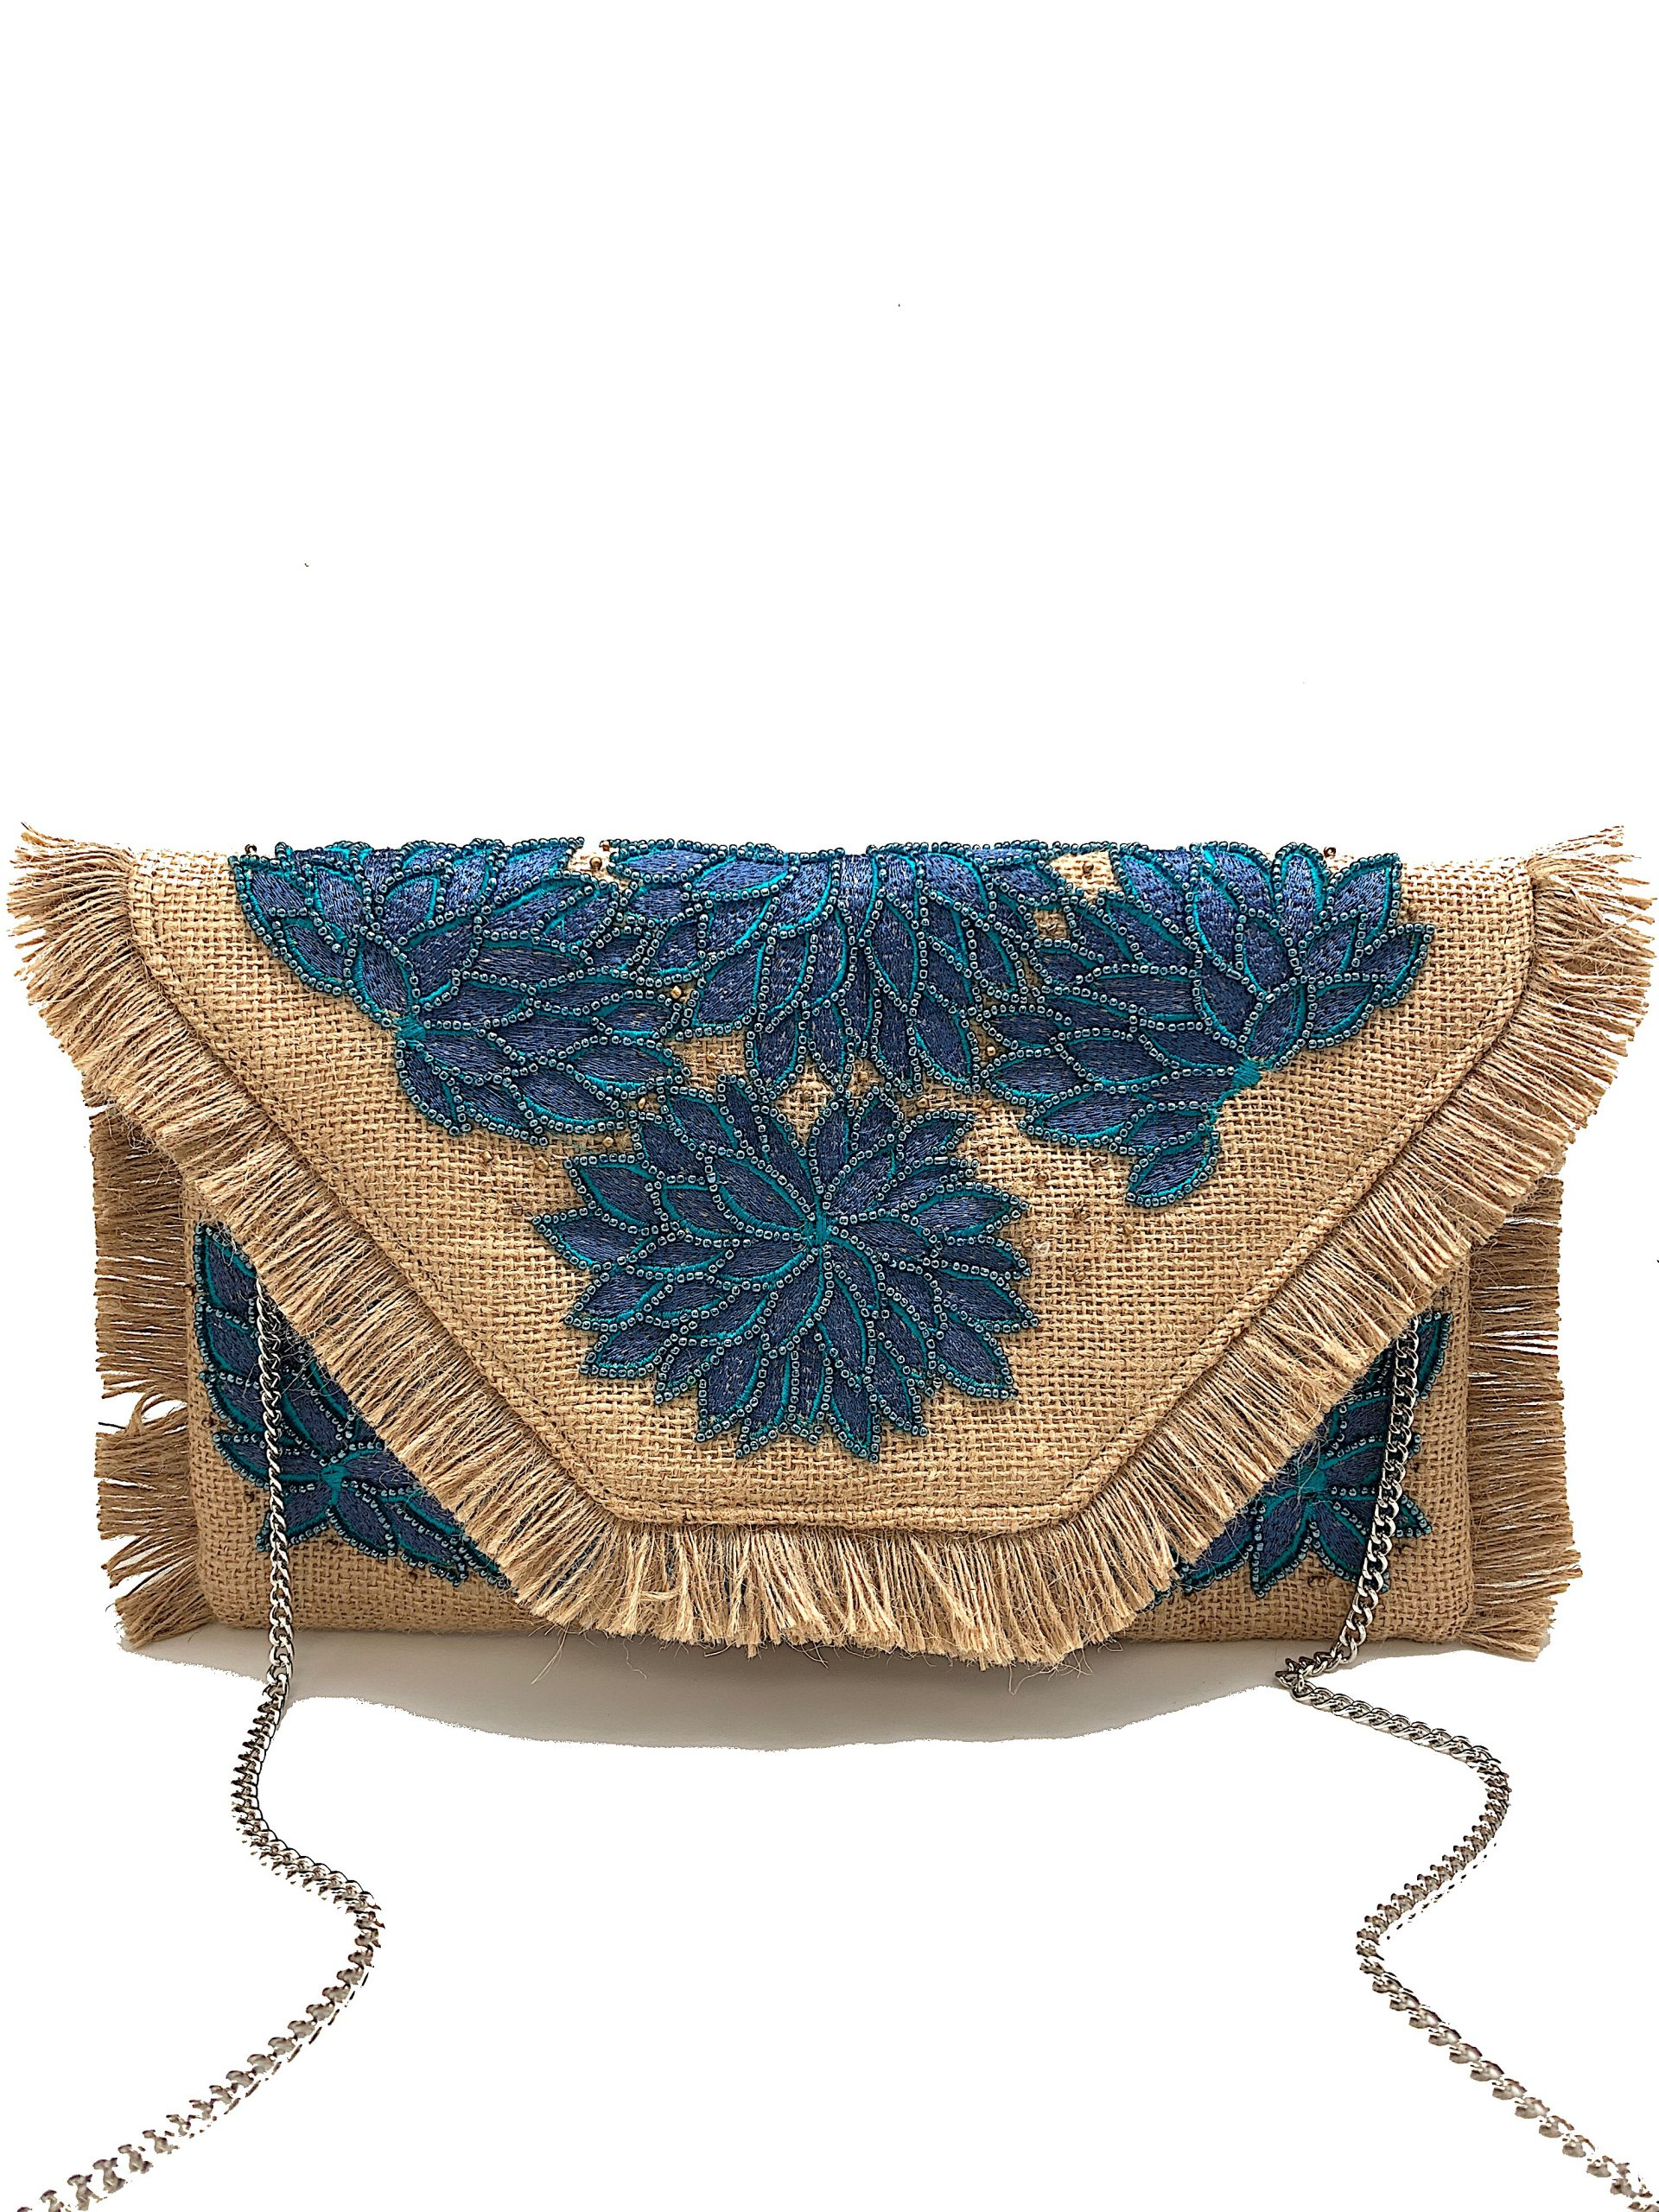 TEAL EMBROIDERED JUTE FLORAL CLUTCH